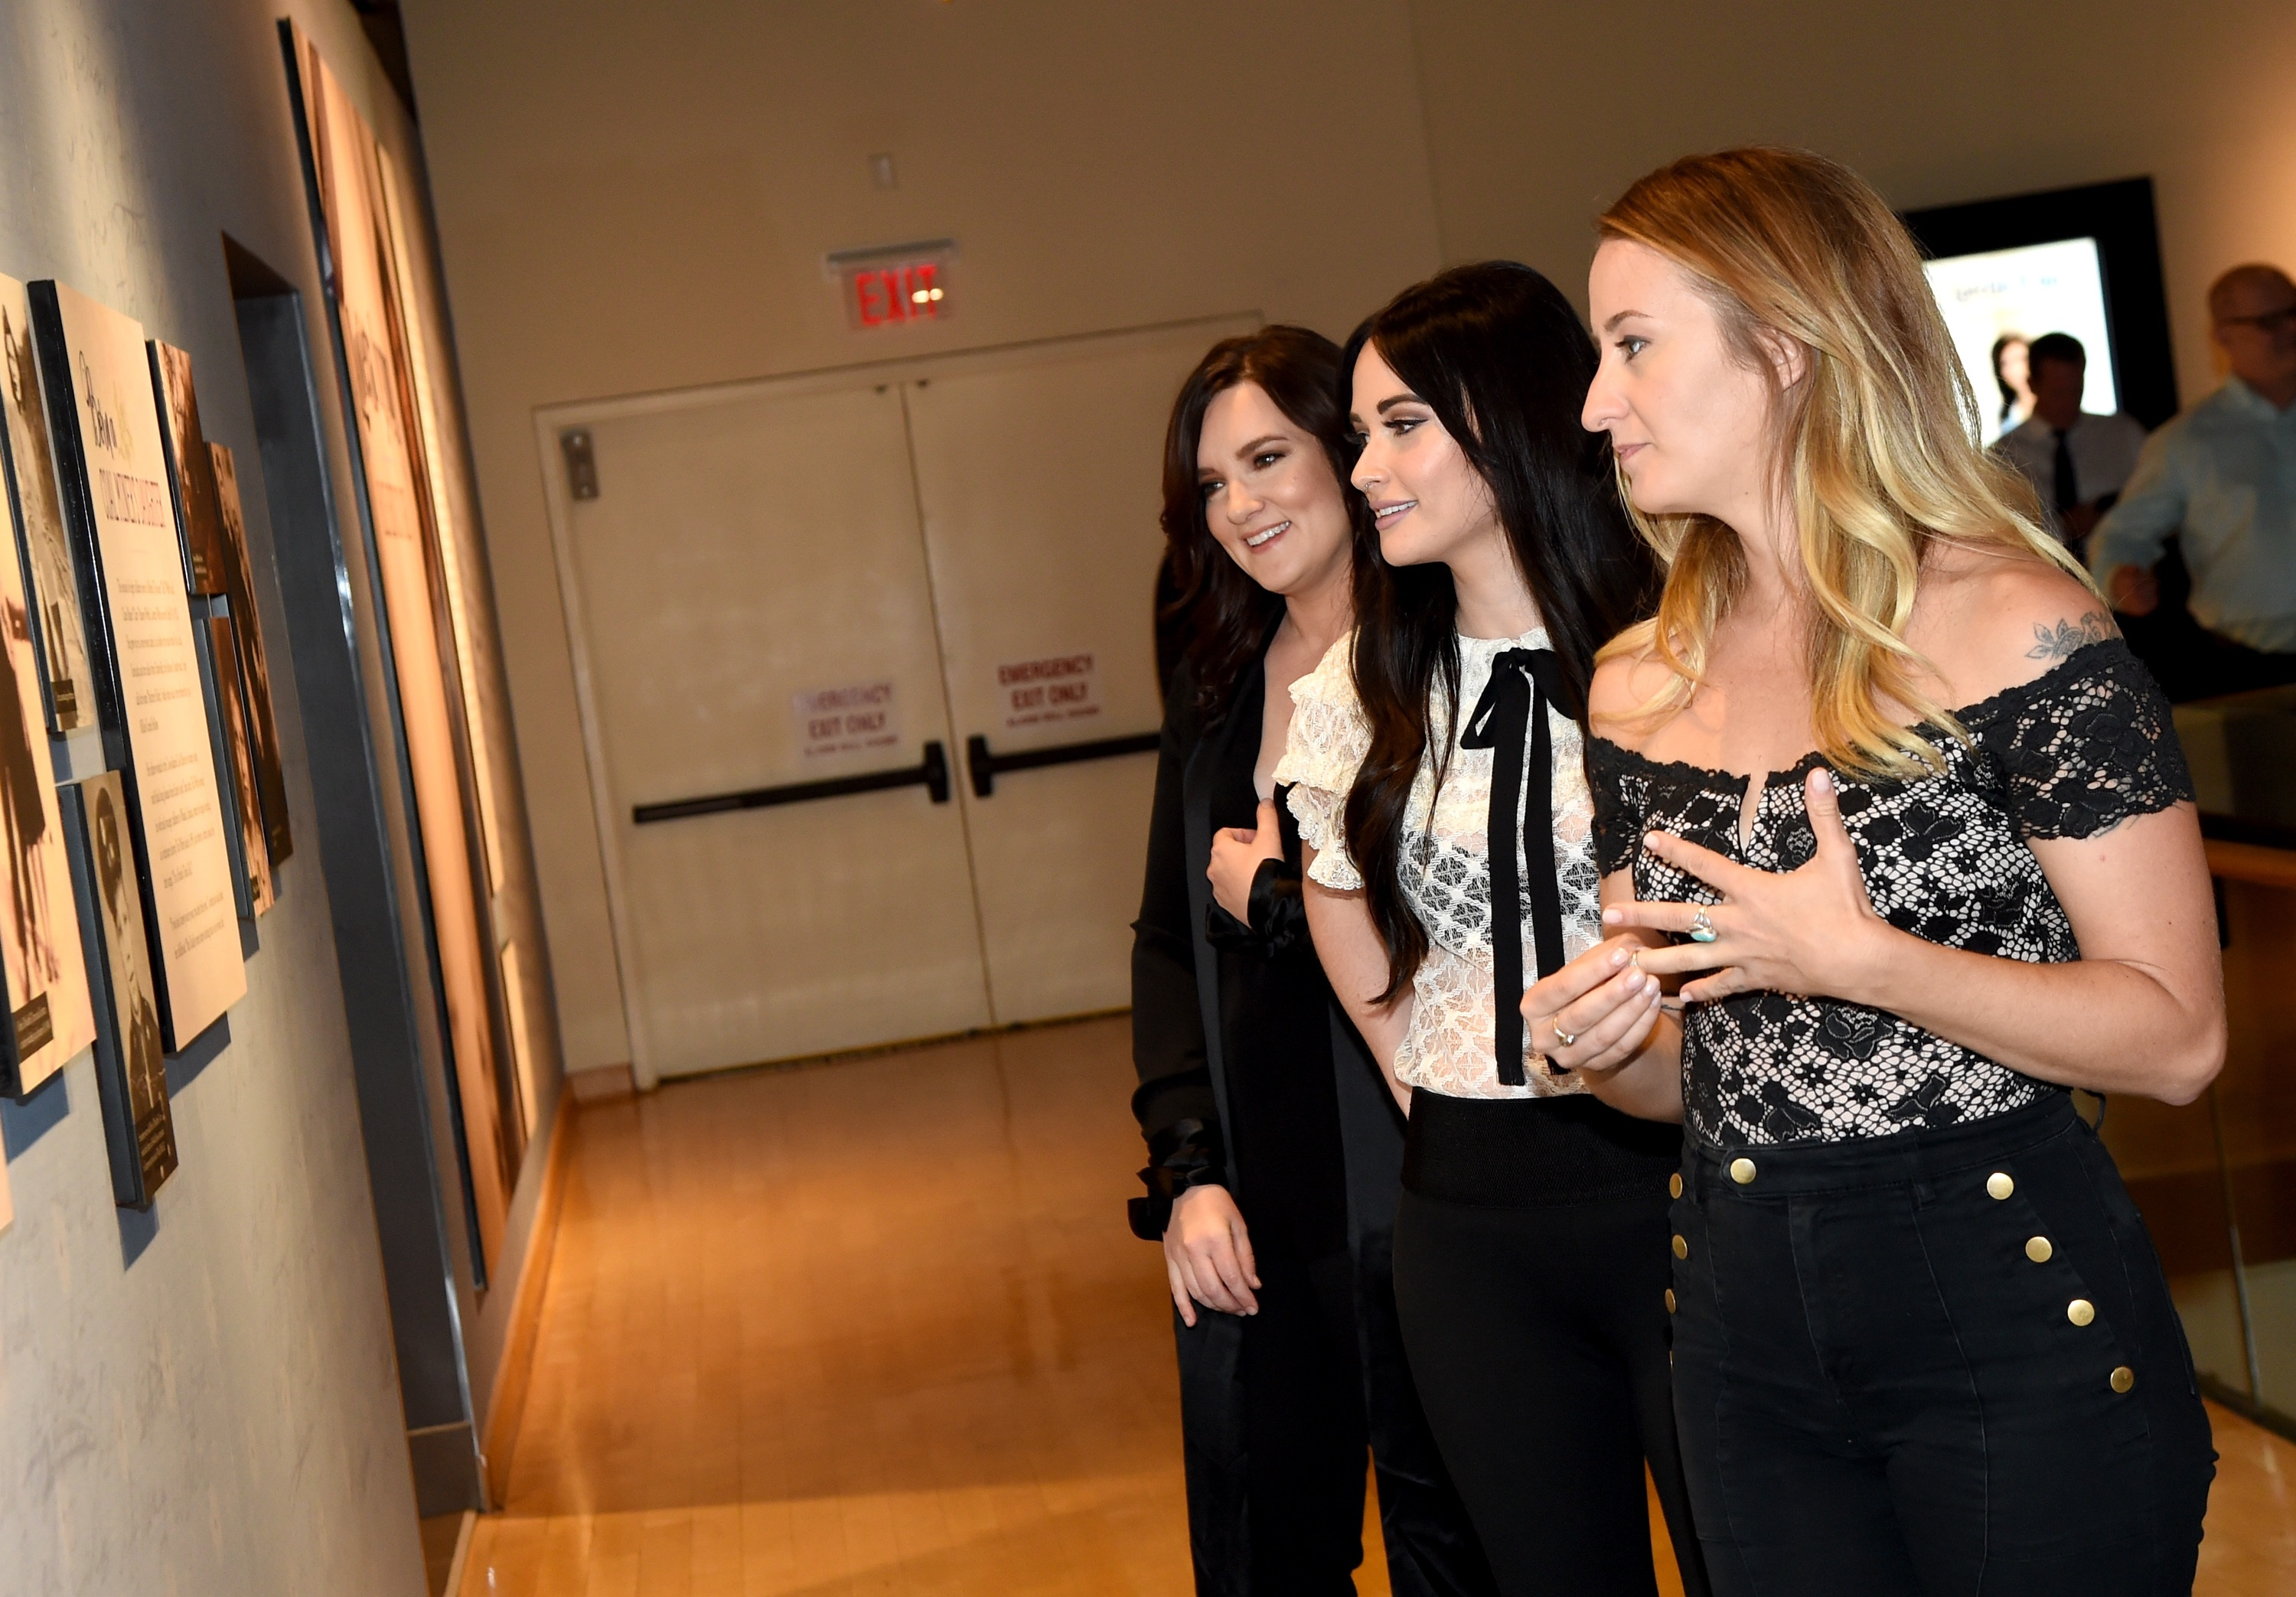 Pictured L-R: Brandy Clark, Kacey Musgraves, and Margo Price; Photo by Rick Diamond/Getty Images for Country Music Hall Of Fame & Museum